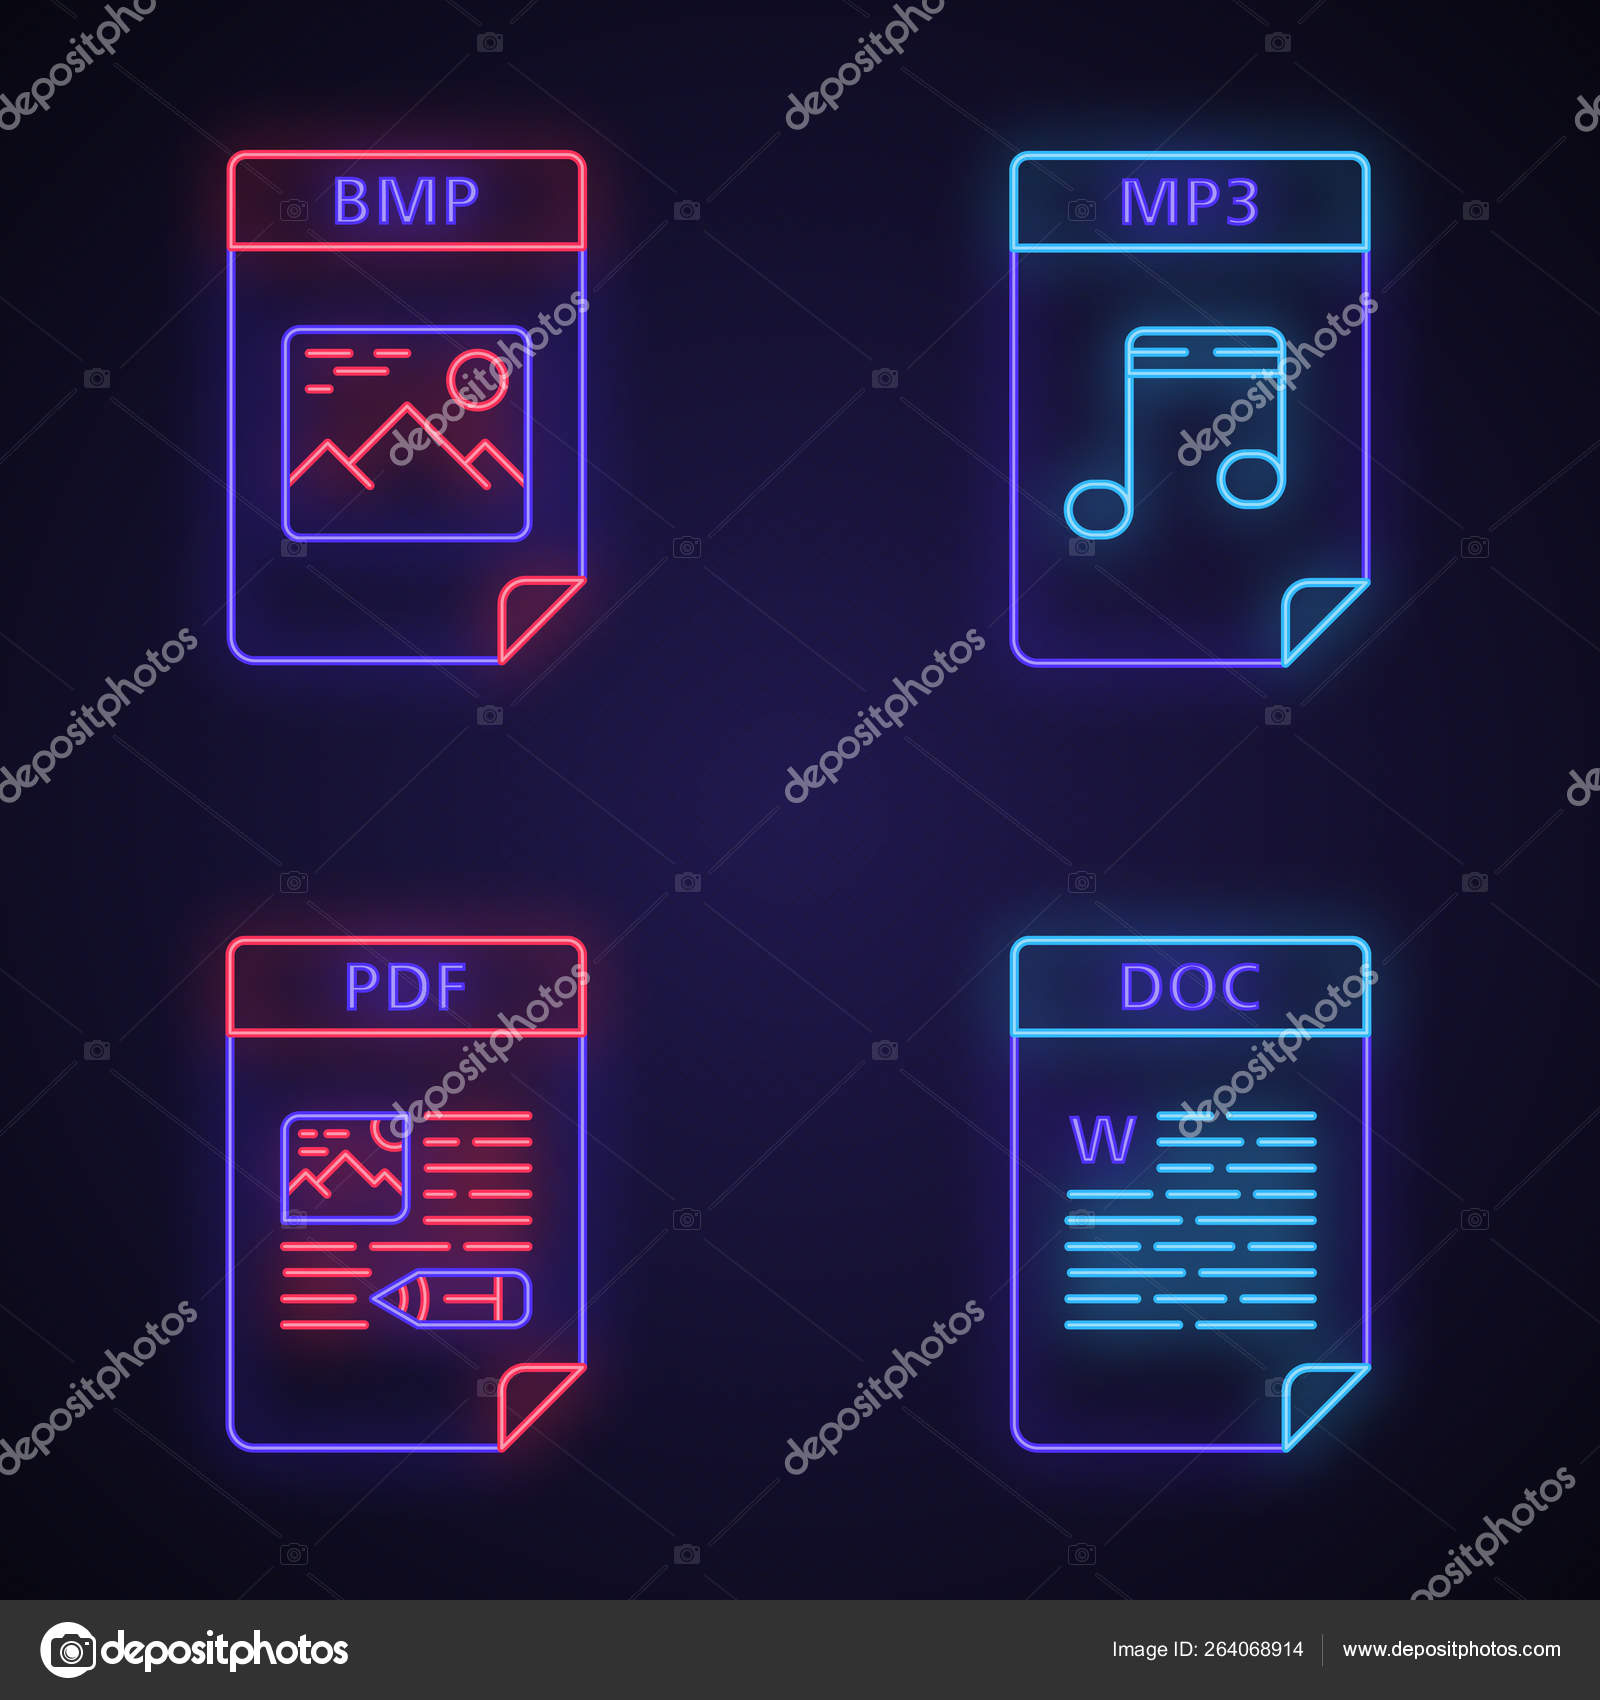 Files format neon light icons set — Stock Vector © bsd #264068914